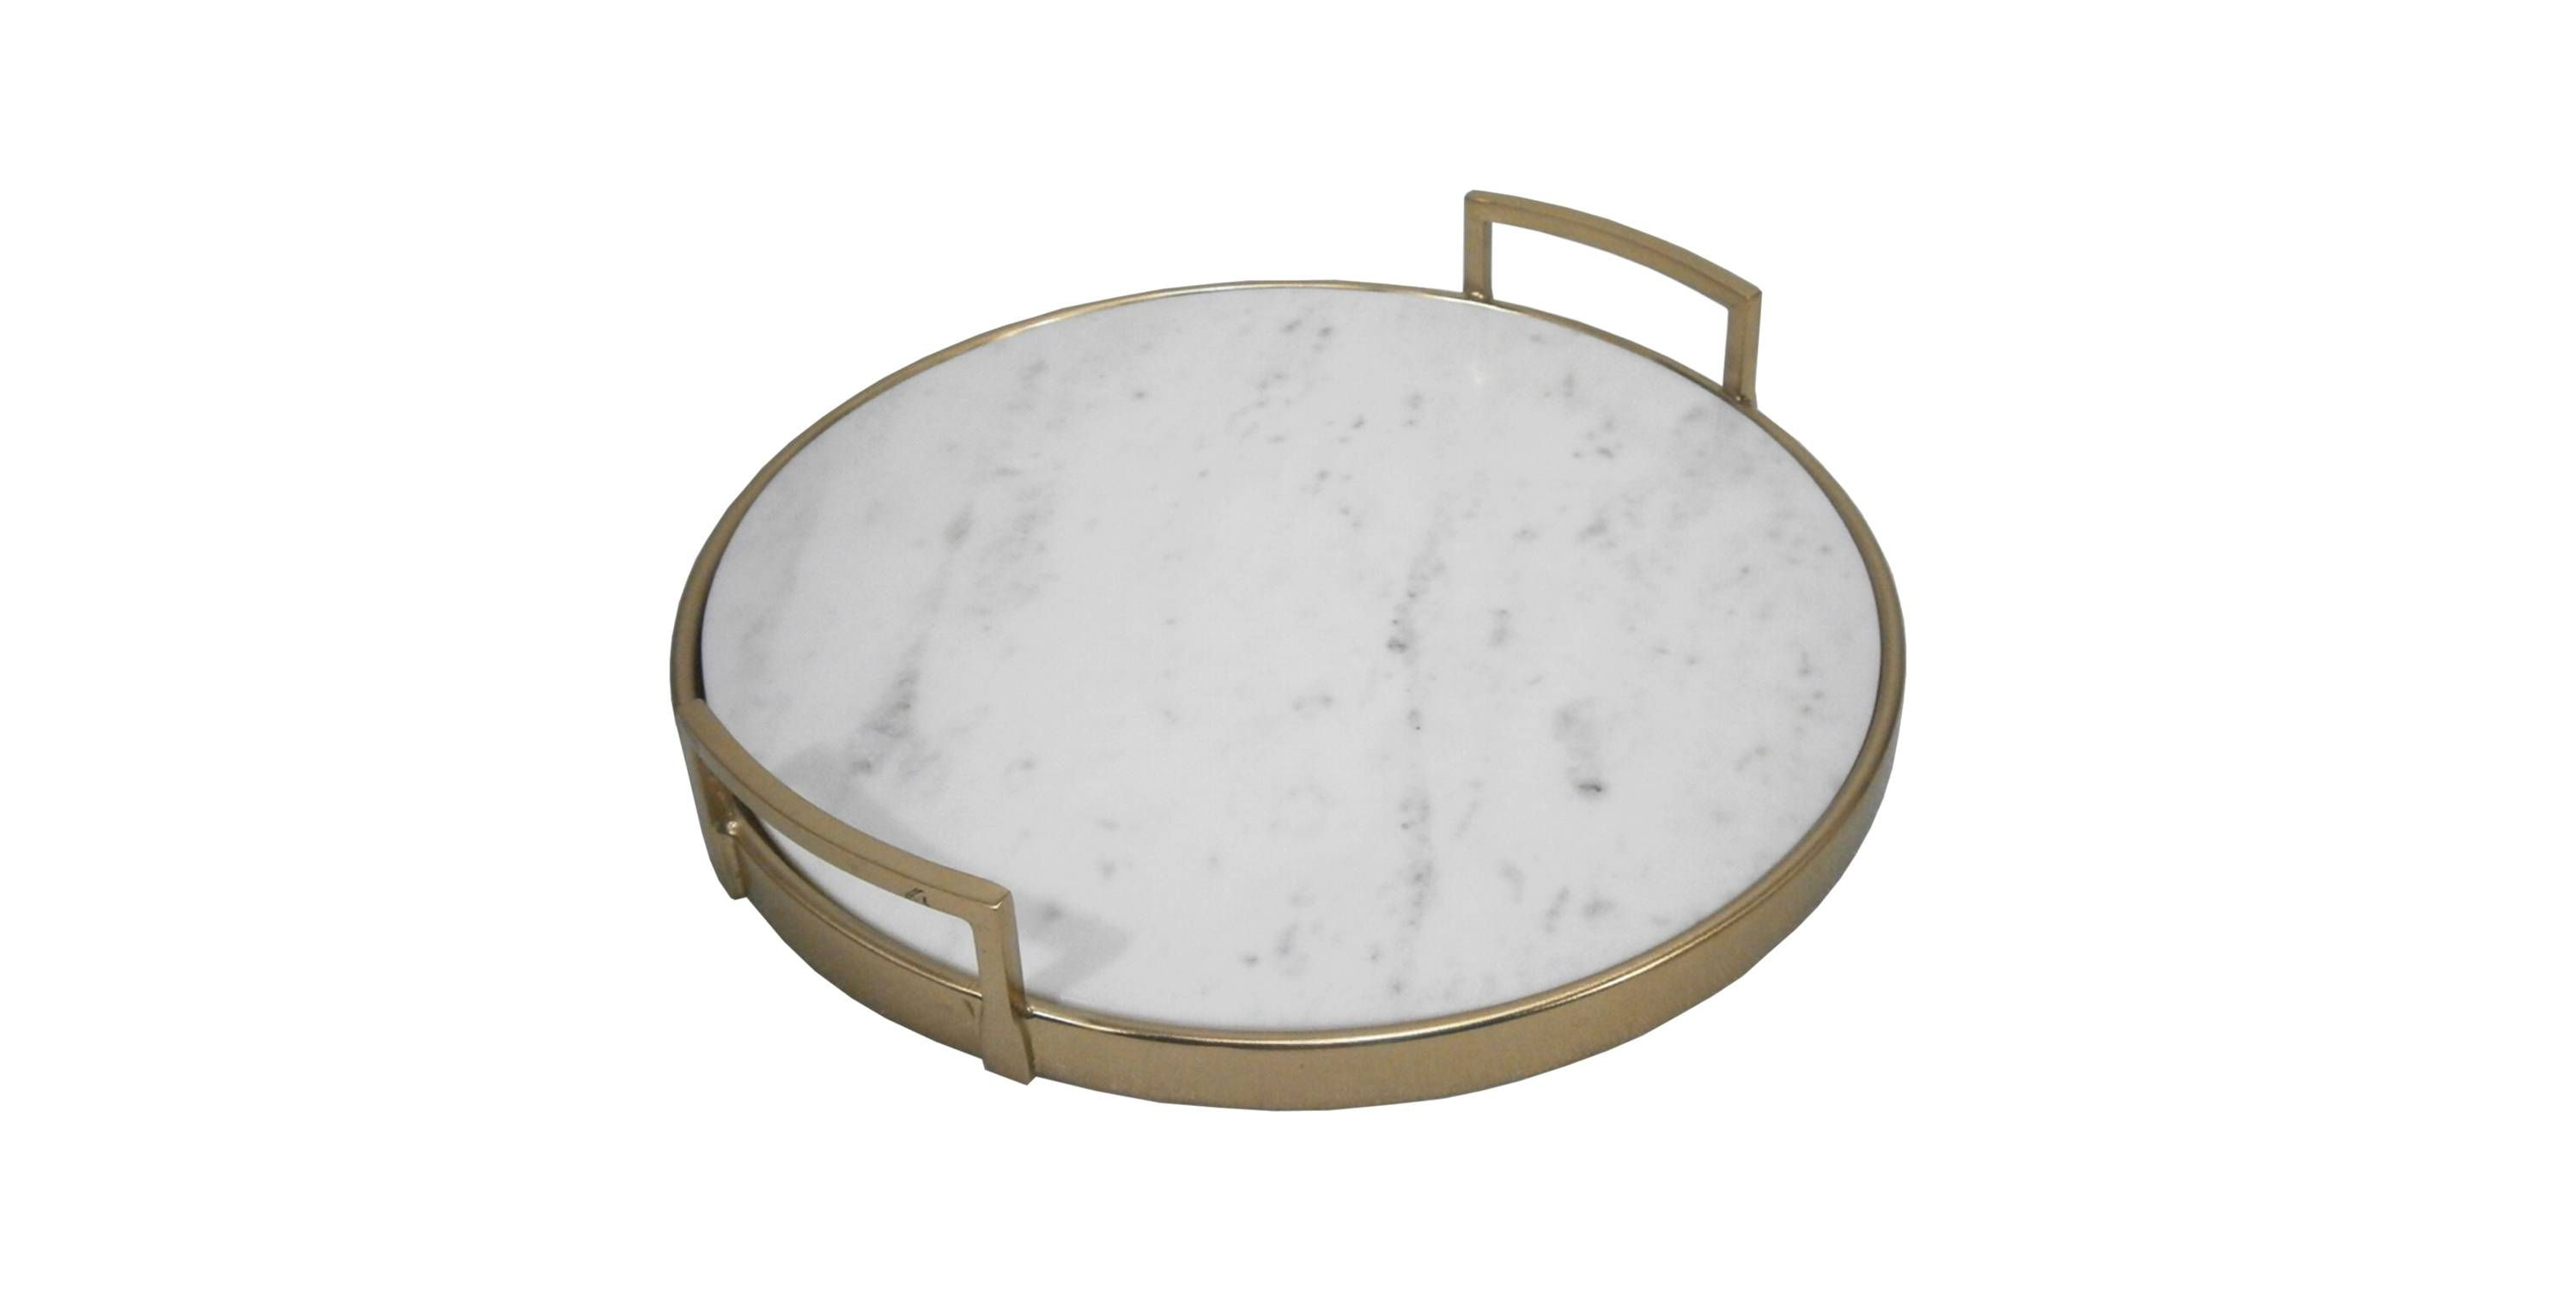 interior designer favorite target home decor item nate berkus glass agate accent table bistro set navy coffee best drum throne storage ikea pier one imports real tiffany lamps